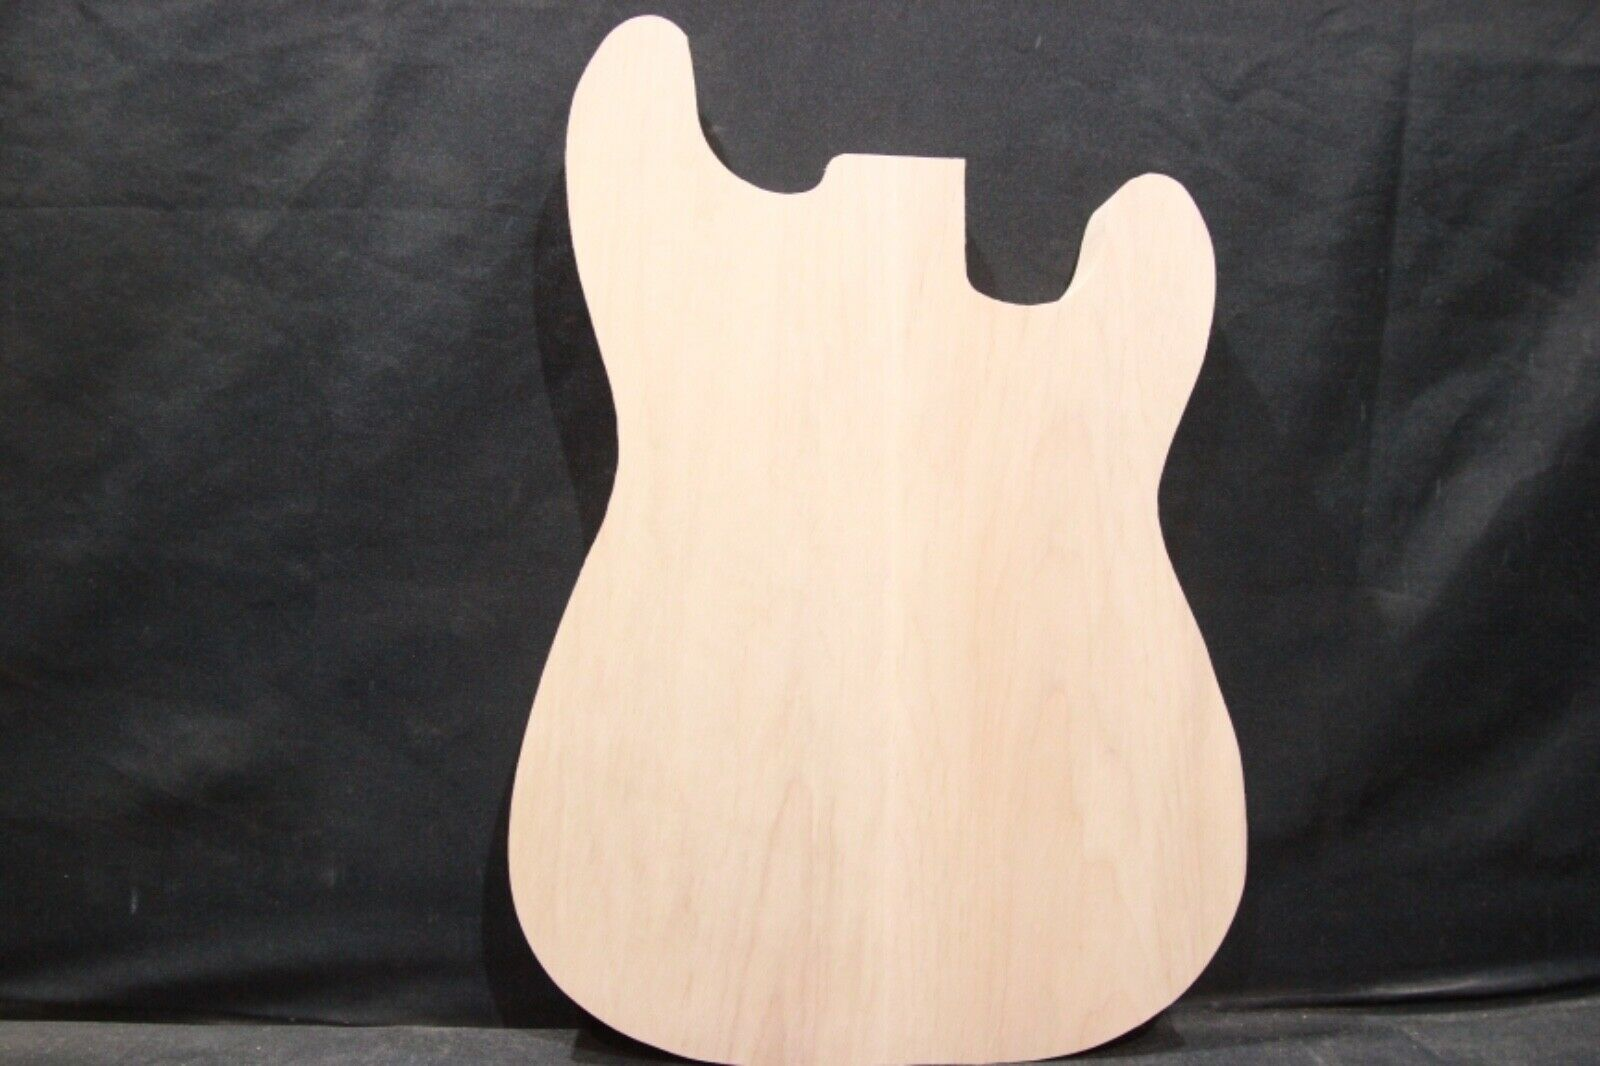 Alder  2-piece guitar body blank   Cut to  STRAT  shape    2316